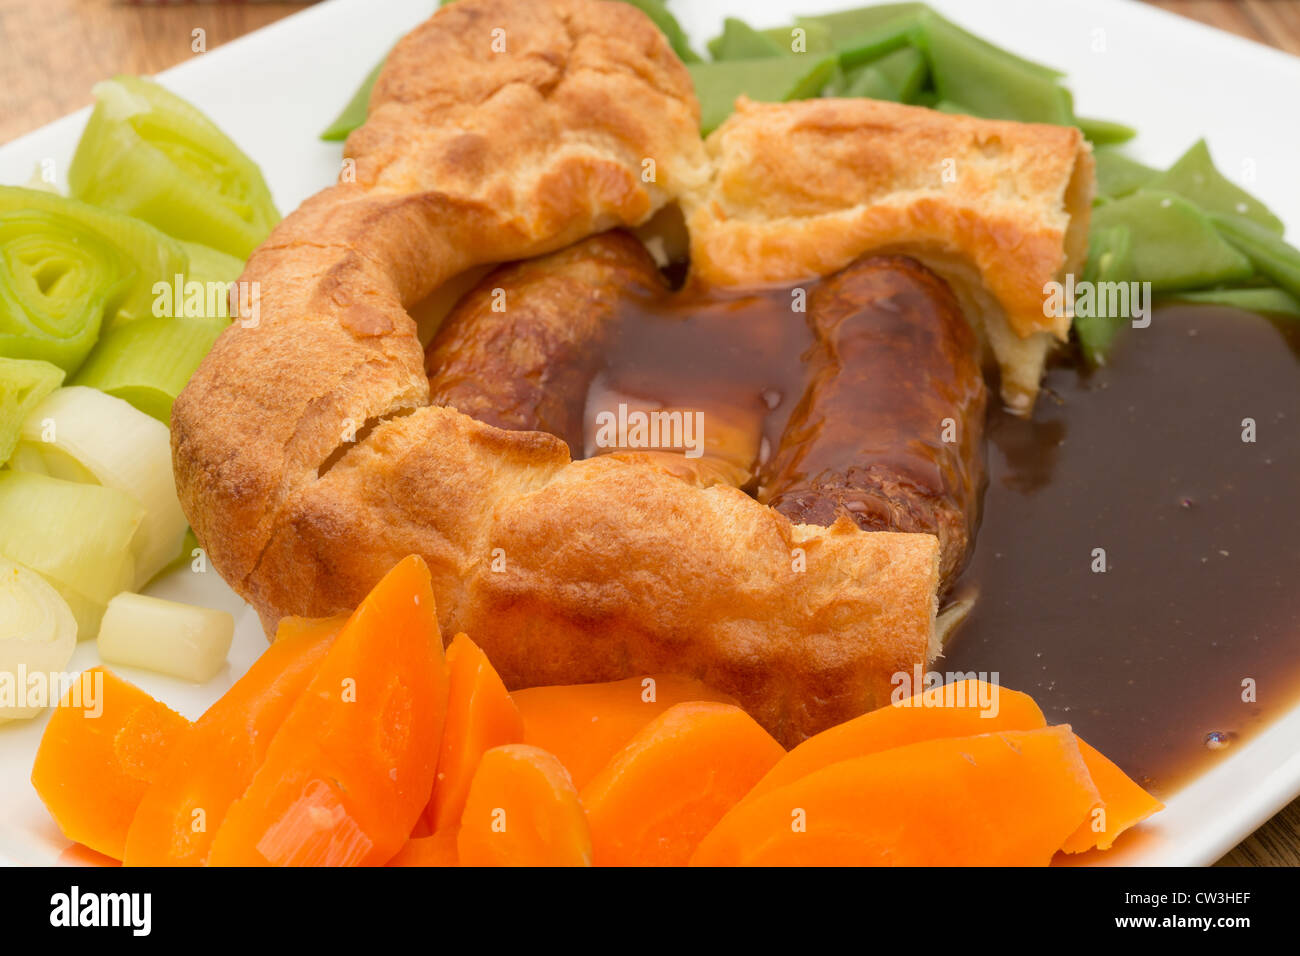 A classic British dish of Toad in the Hole, which are pork sausages cooked in batter then served with vegetables - Stock Image